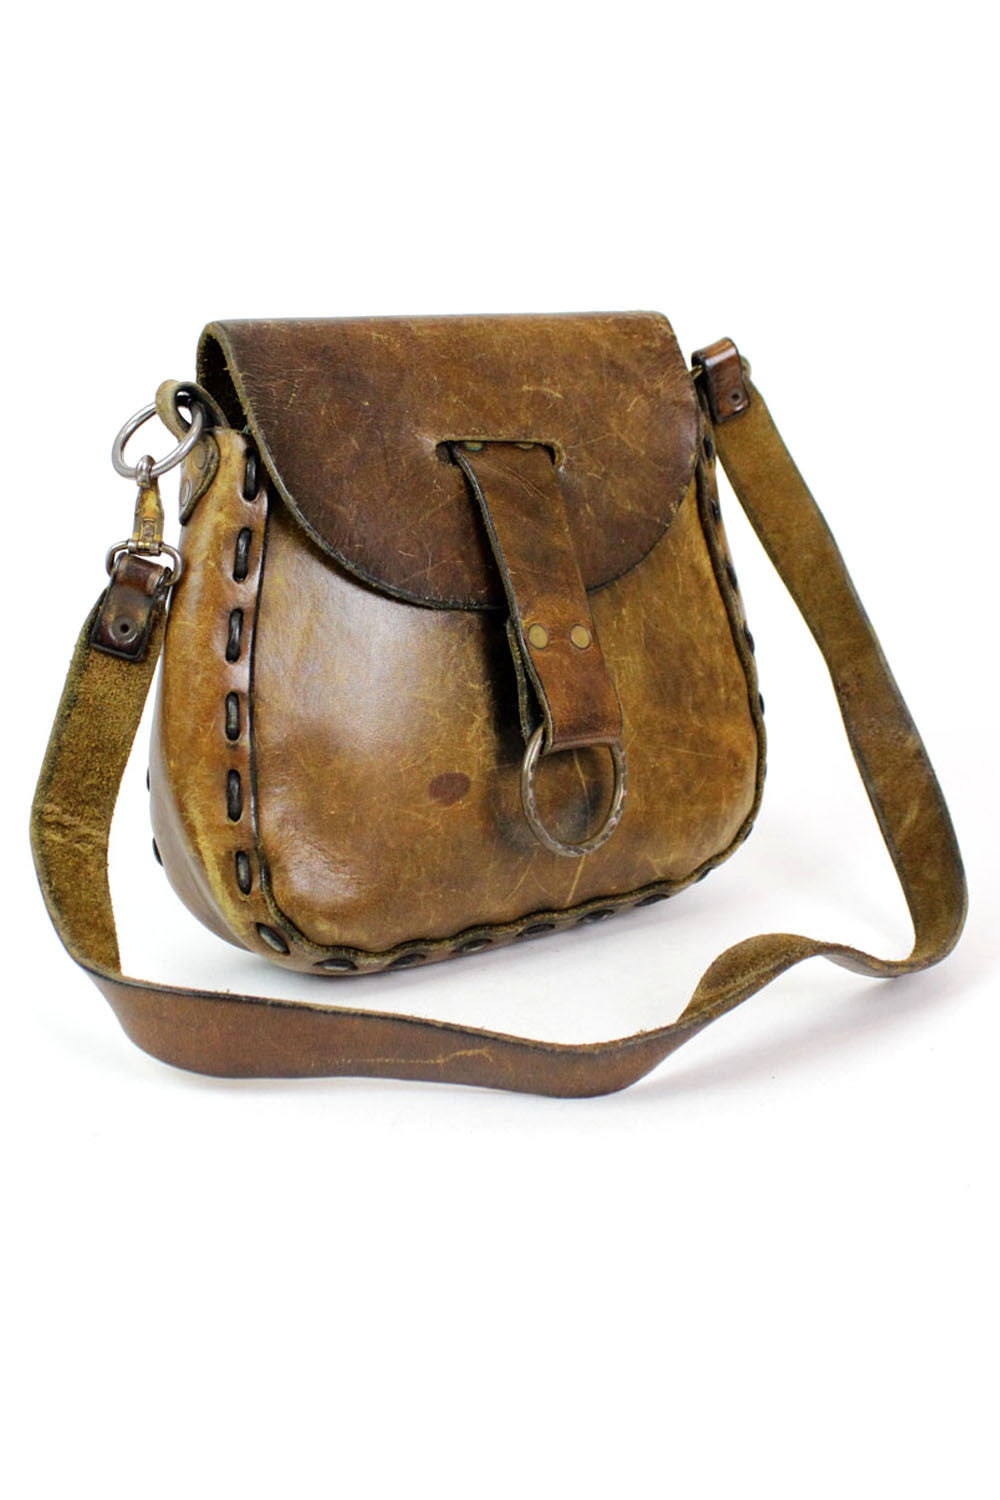 woodstock satchel